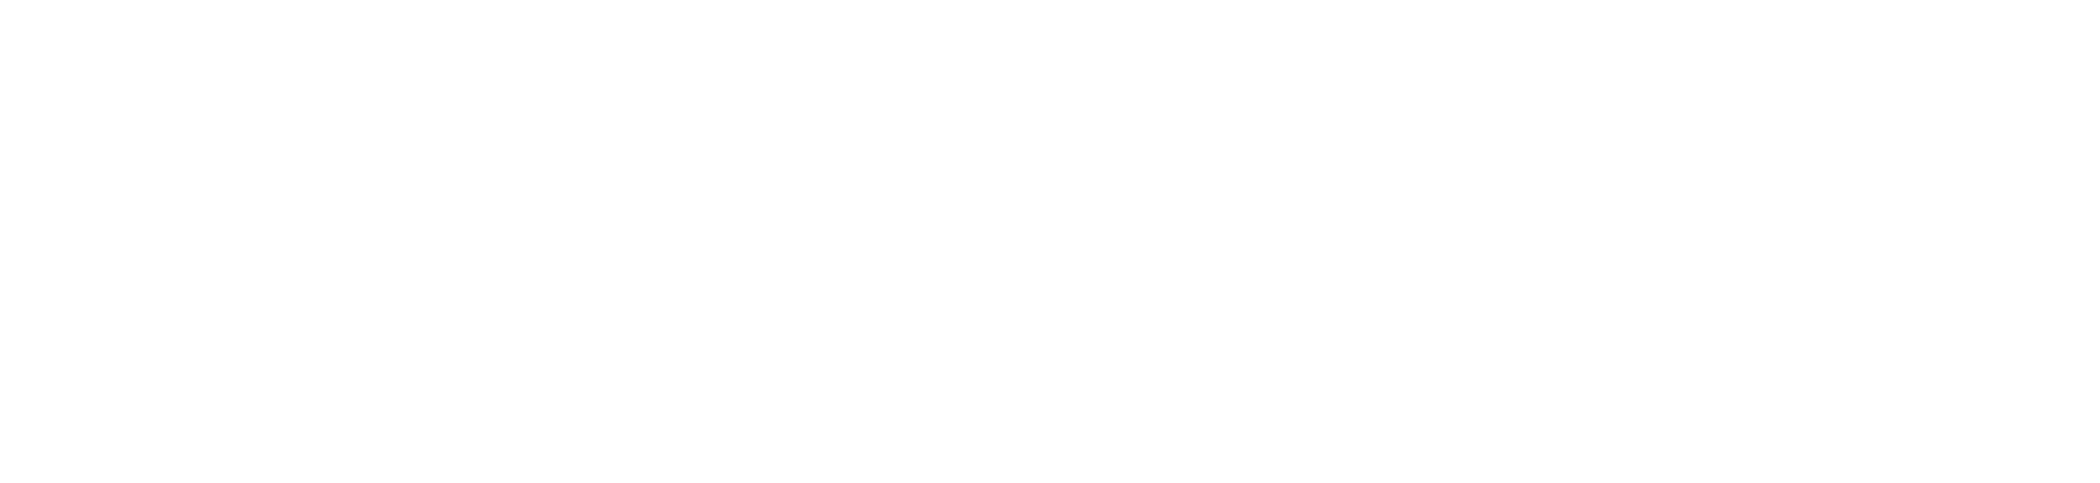 https://growco.inc.com/wp-content/uploads/2015/12/Insperity_Logo.png